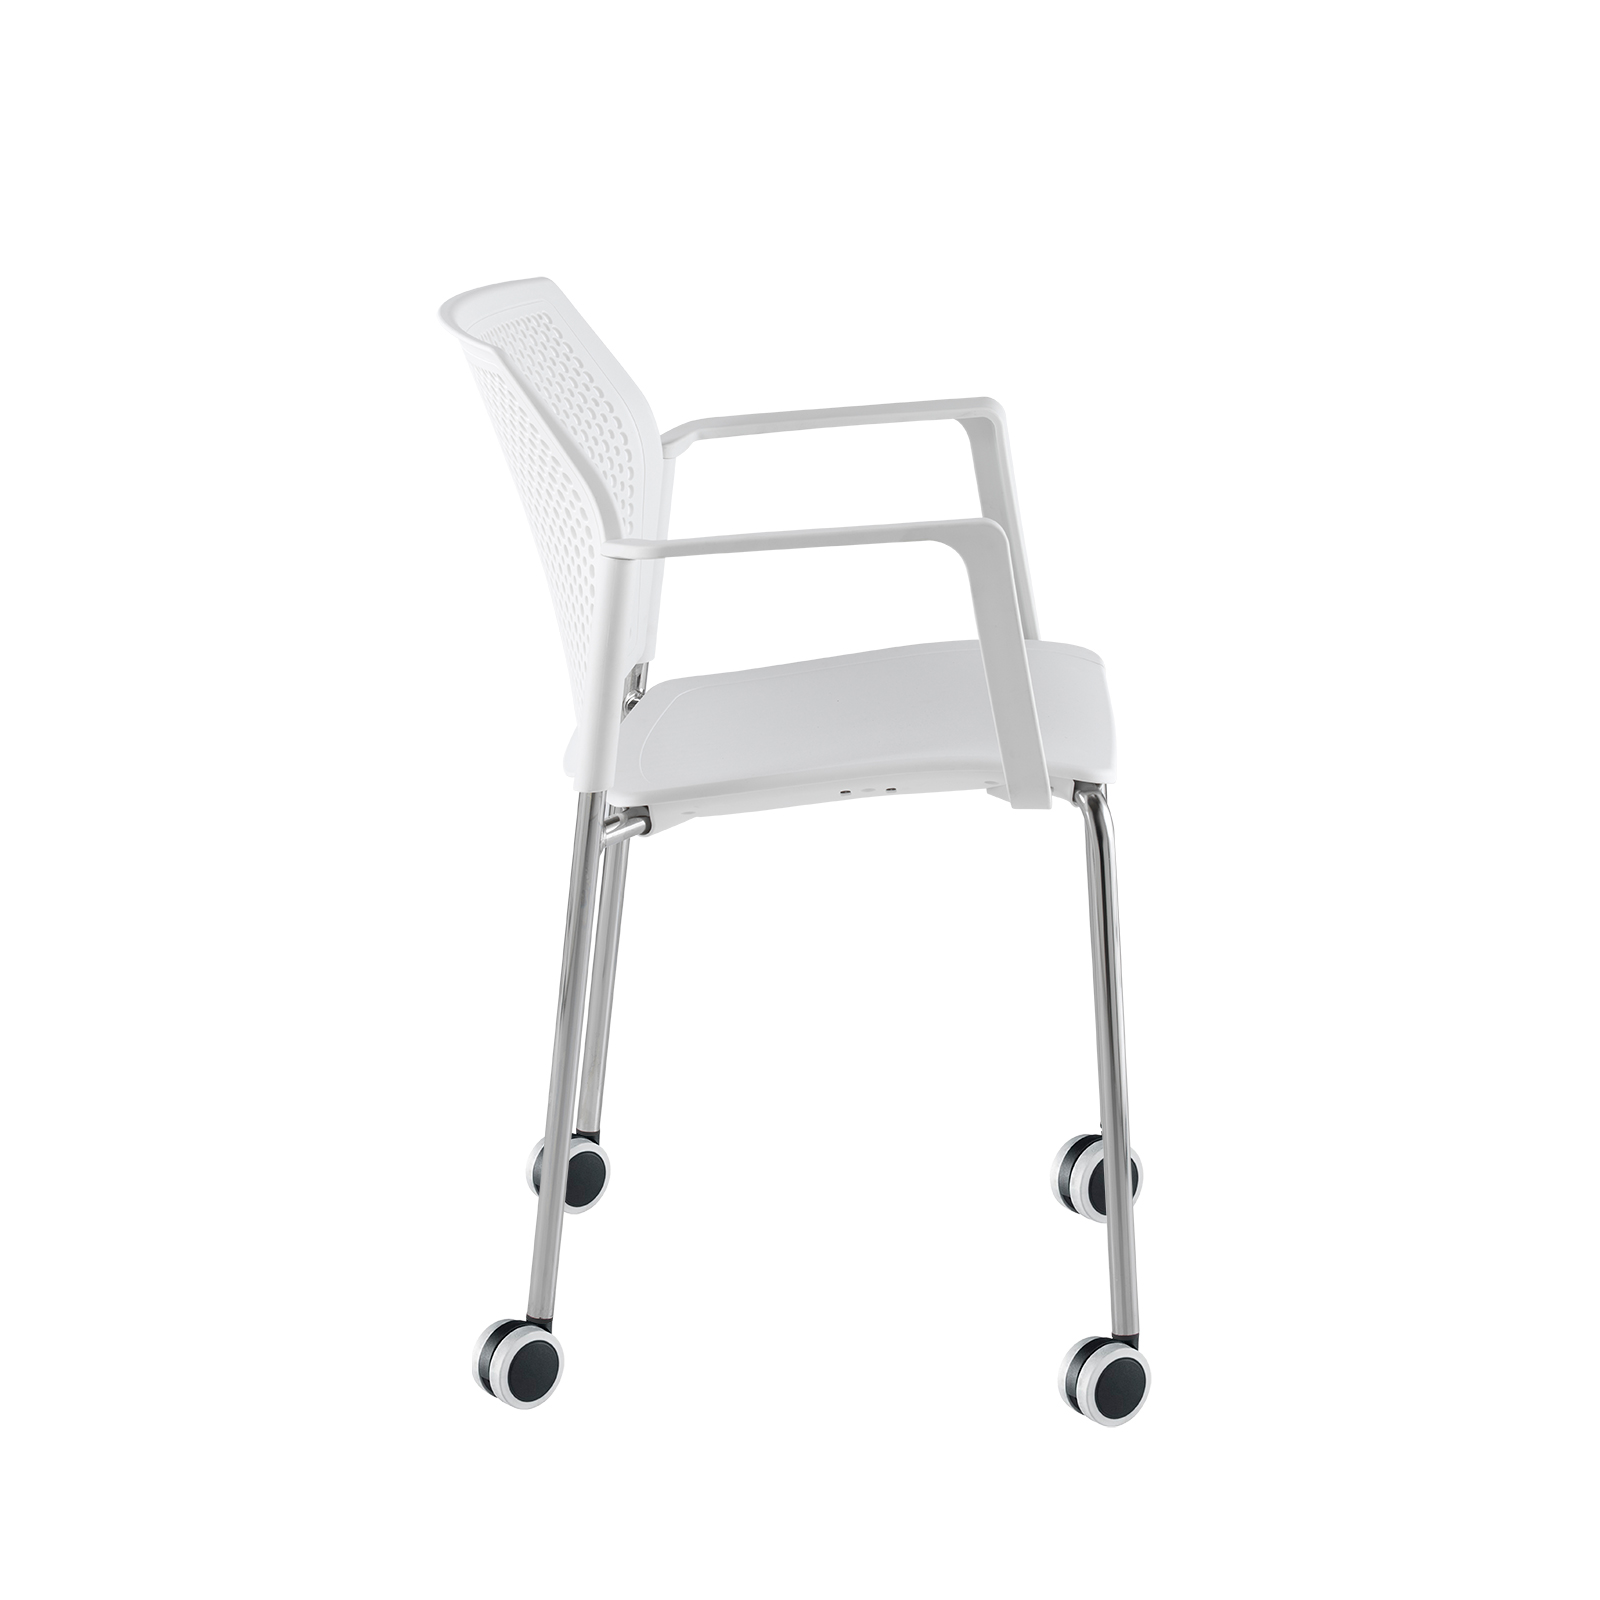 Santana 4 leg mobile chair with plastic seat and perforated back